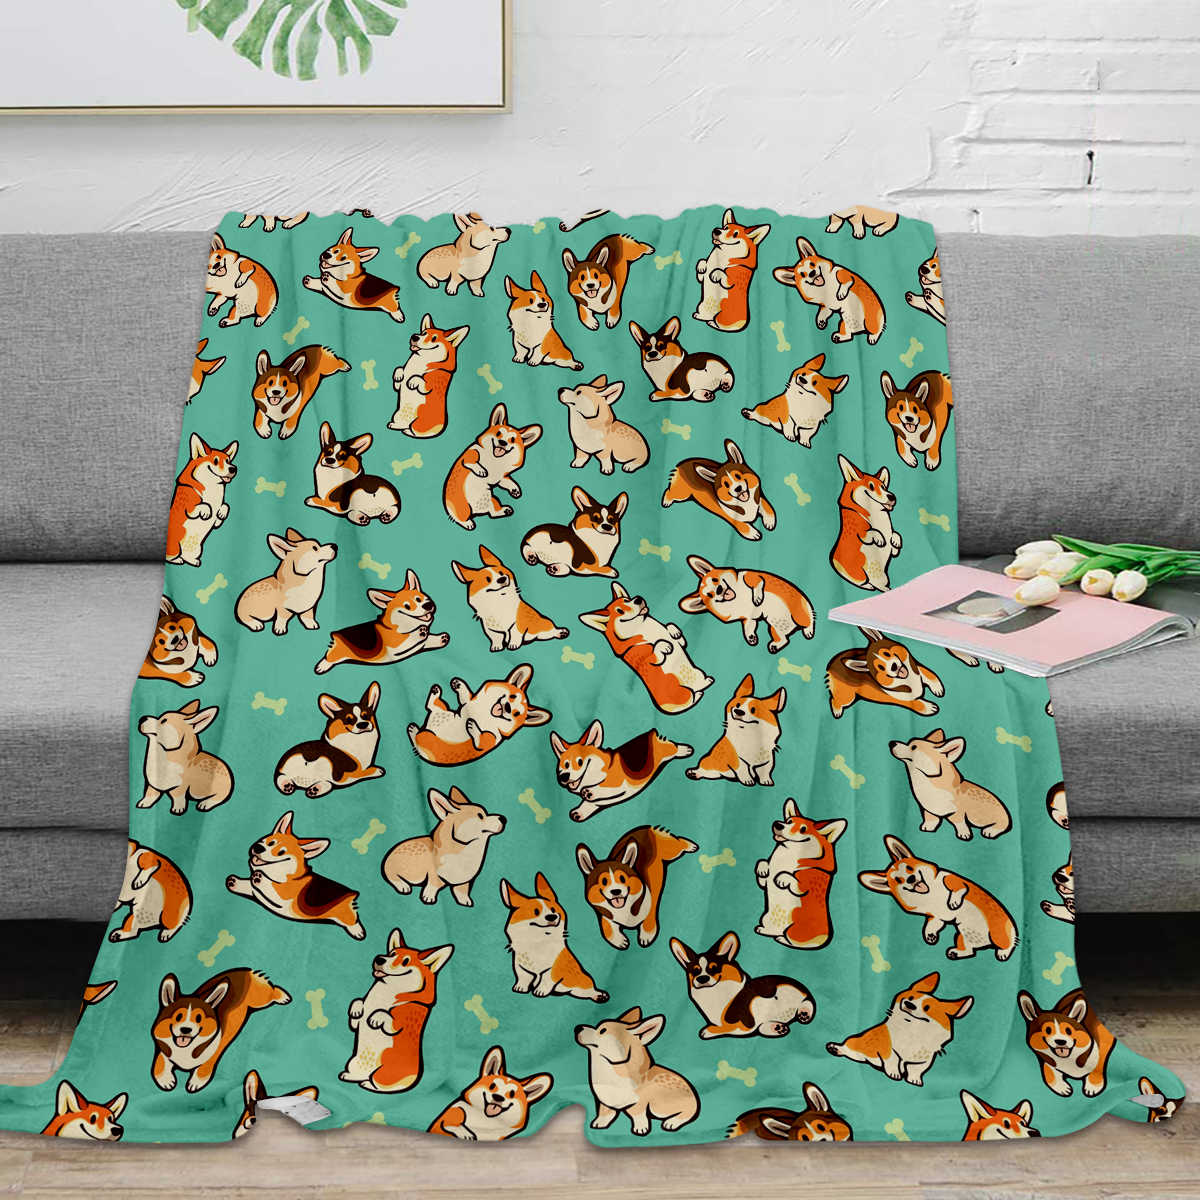 Jolly Corgis In Green Throw Blanket Home Decoration Dog and Bone  Warm Microfiber Blankets For Bedroom